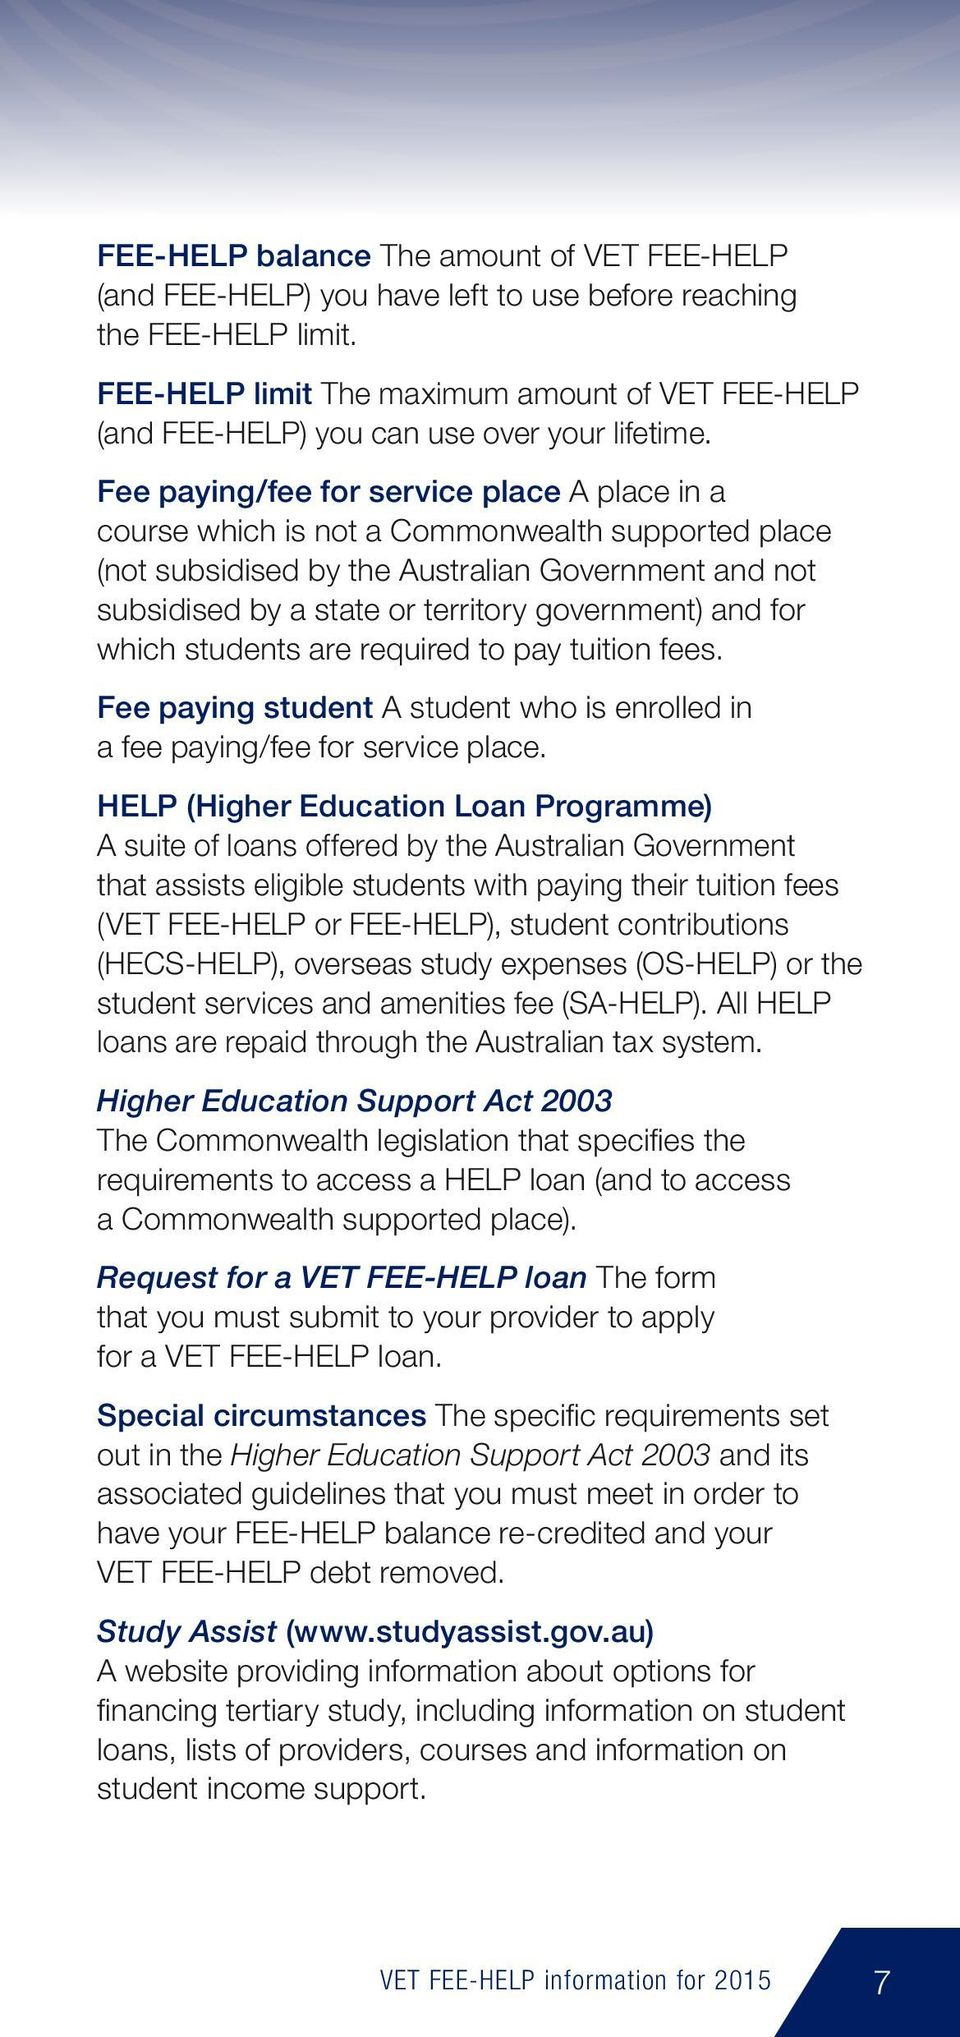 Fee paying/fee for service place A place in a course which is not a Commonwealth supported place (not subsidised by the Australian Government and not subsidised by a state or territory government)